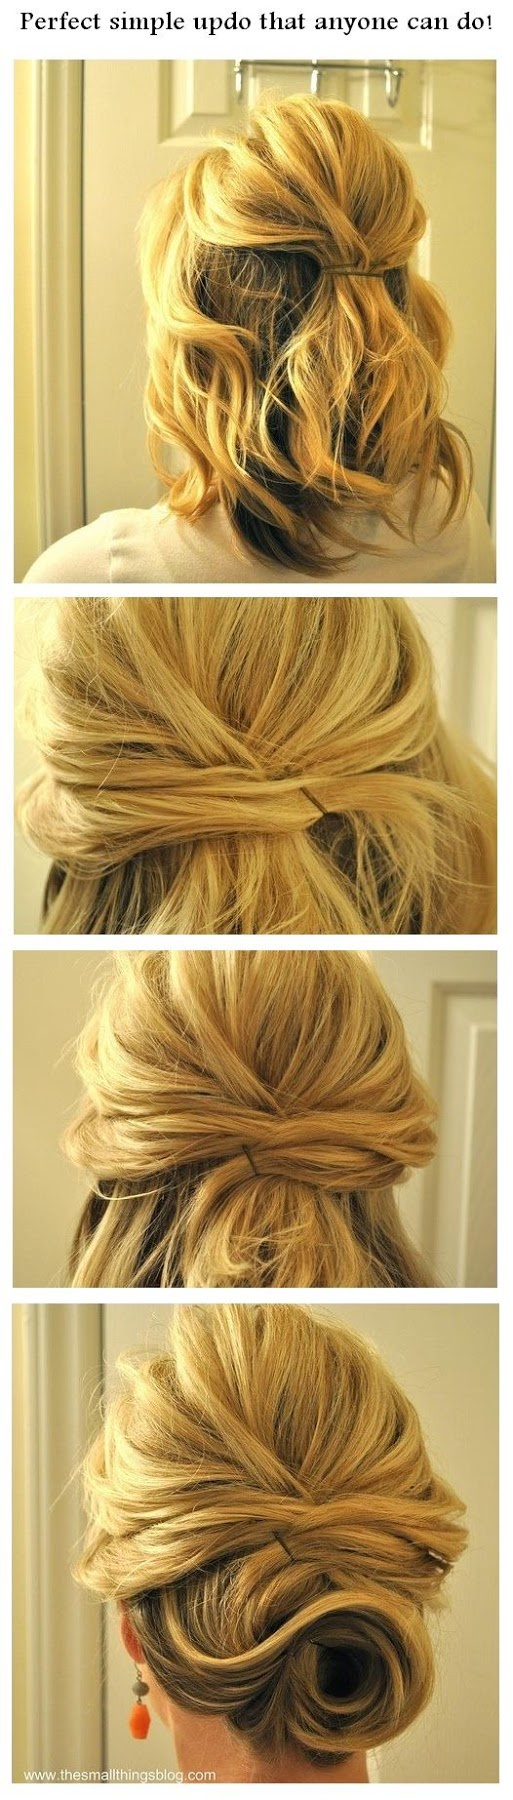 23 Great Elegant Hairstyles Ideas and Tutorials (14)